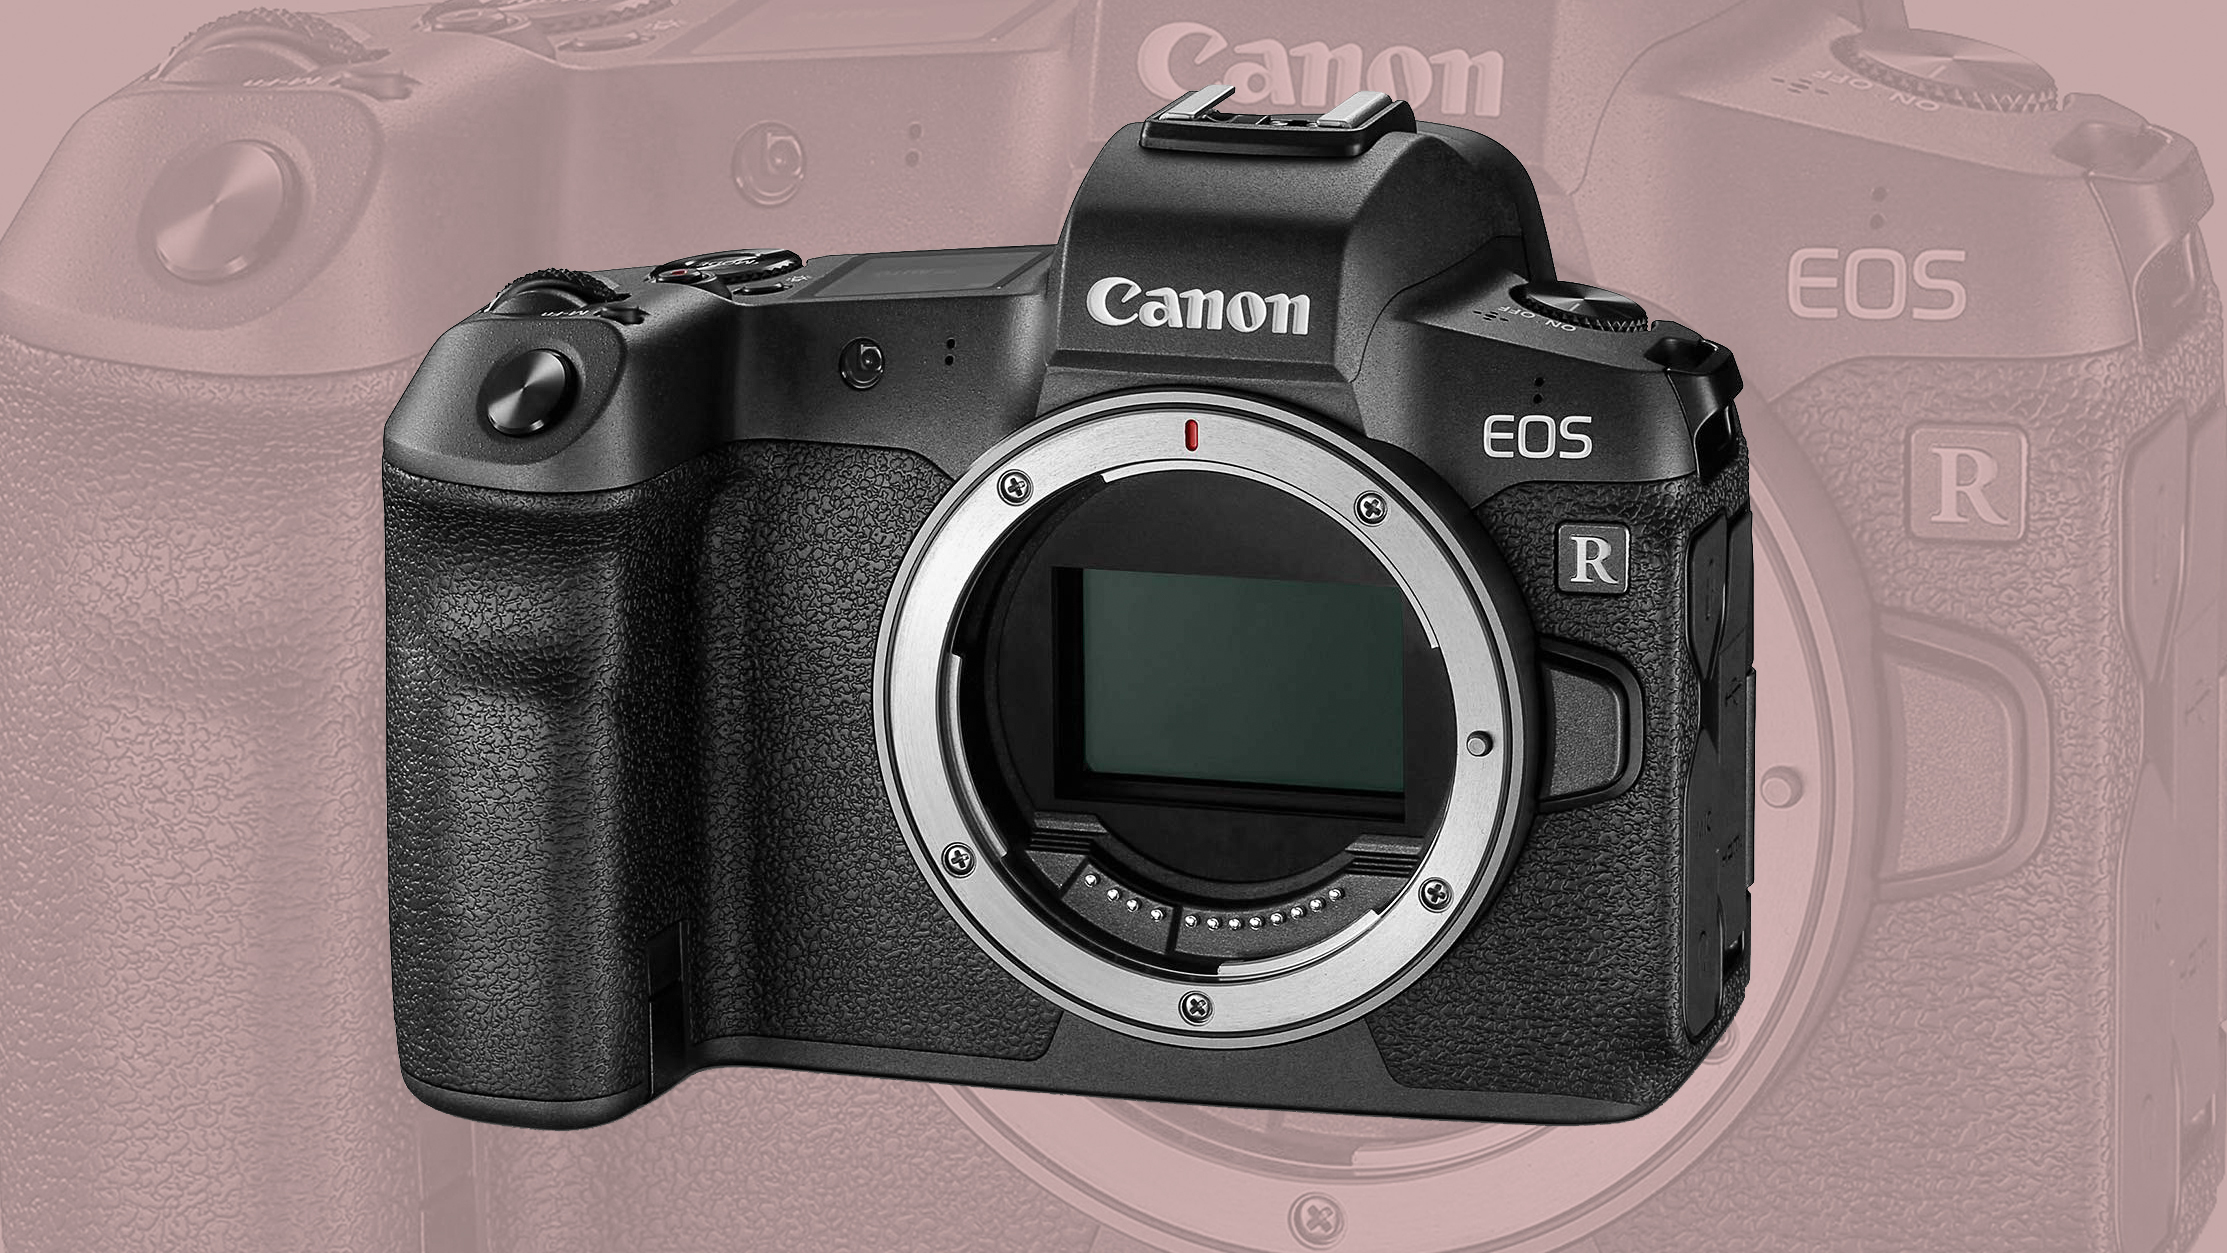 Canon EOS R deals: up to $500 off + free EF adapter, 2 SD cards, bag & monopod